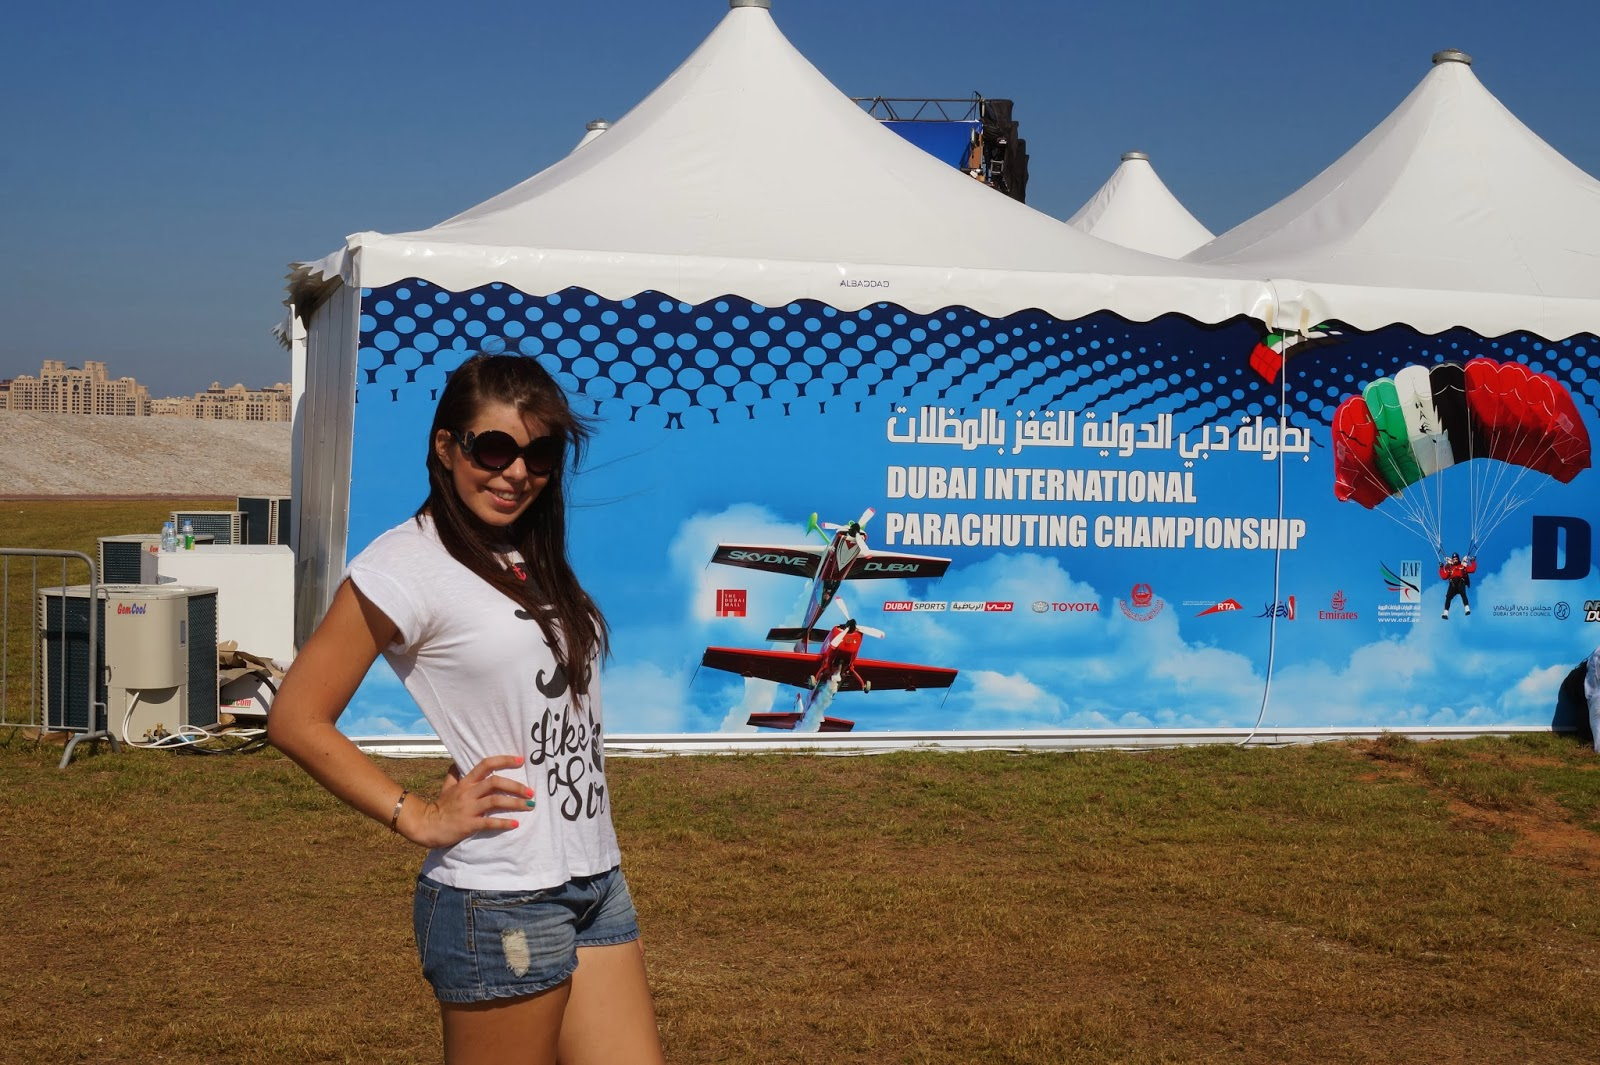 4th Dubai International Parachuting Championship 2013